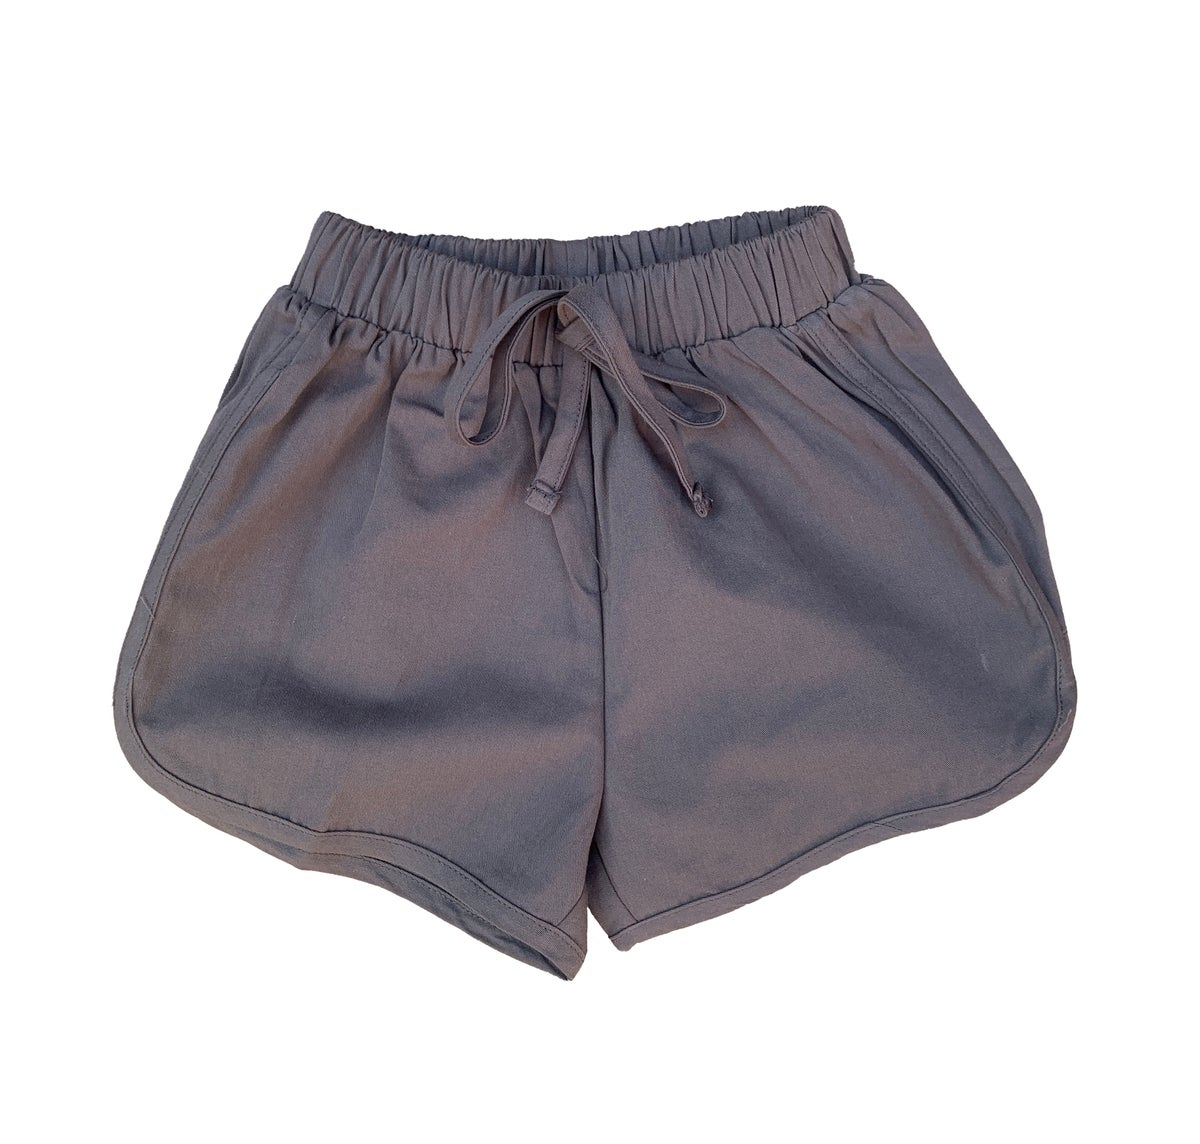 Image of Cotton runner shorts - grey